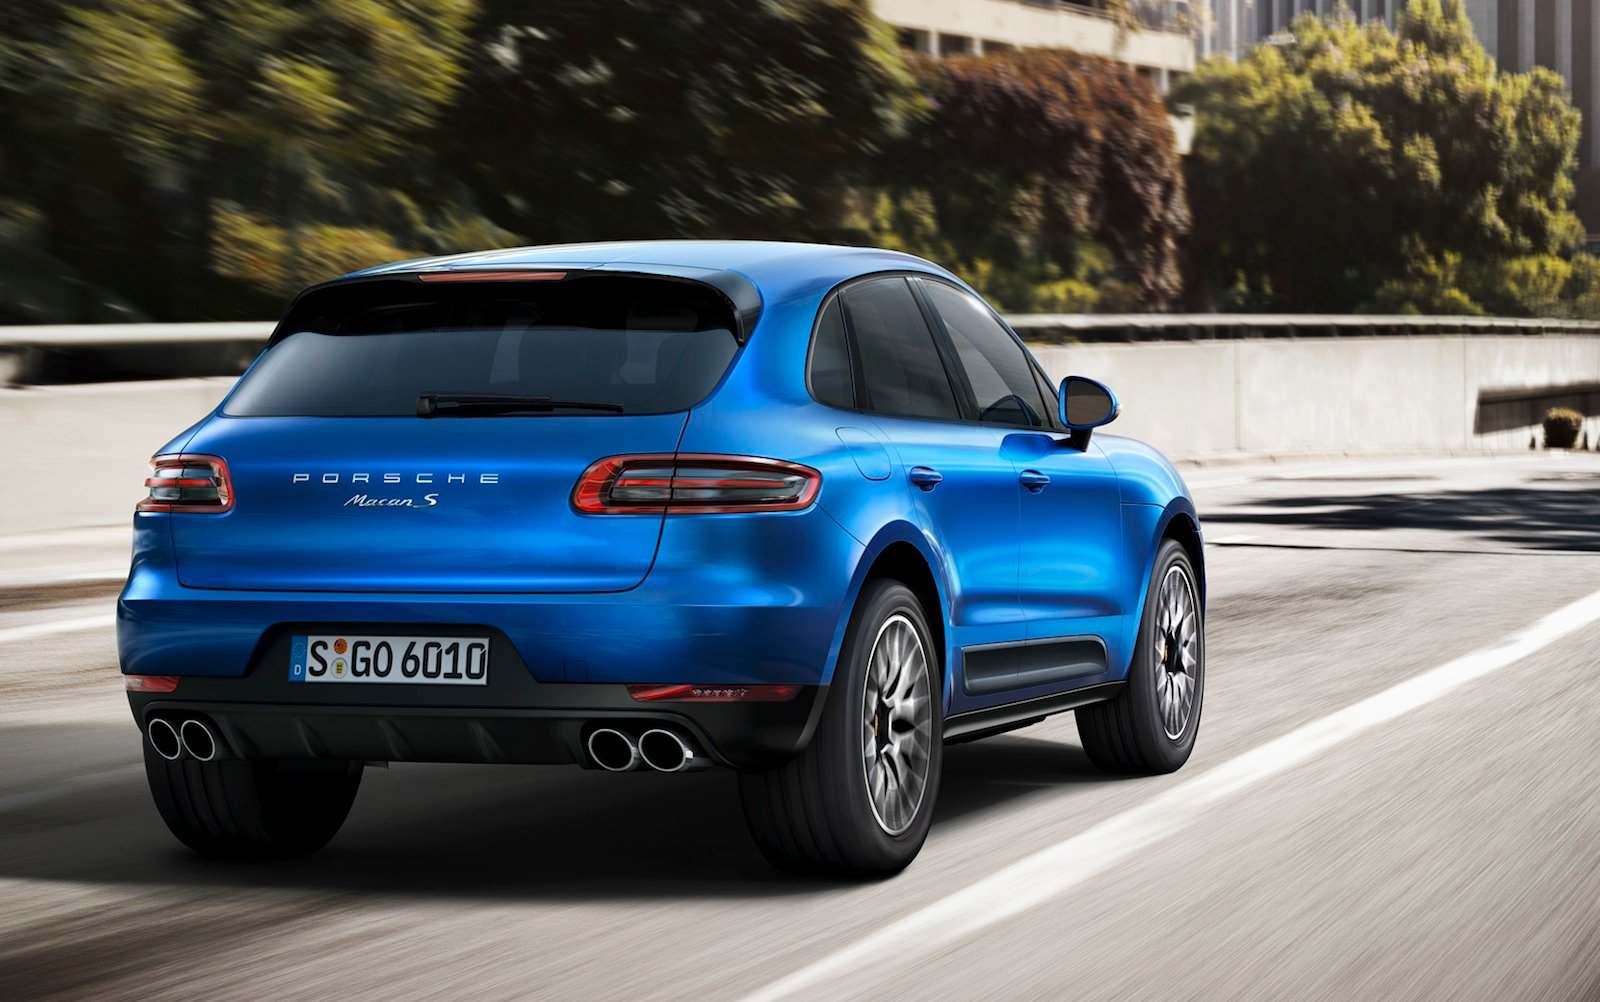 porsche macan pricing and specifications from 84 900 photos 1 of 22. Black Bedroom Furniture Sets. Home Design Ideas